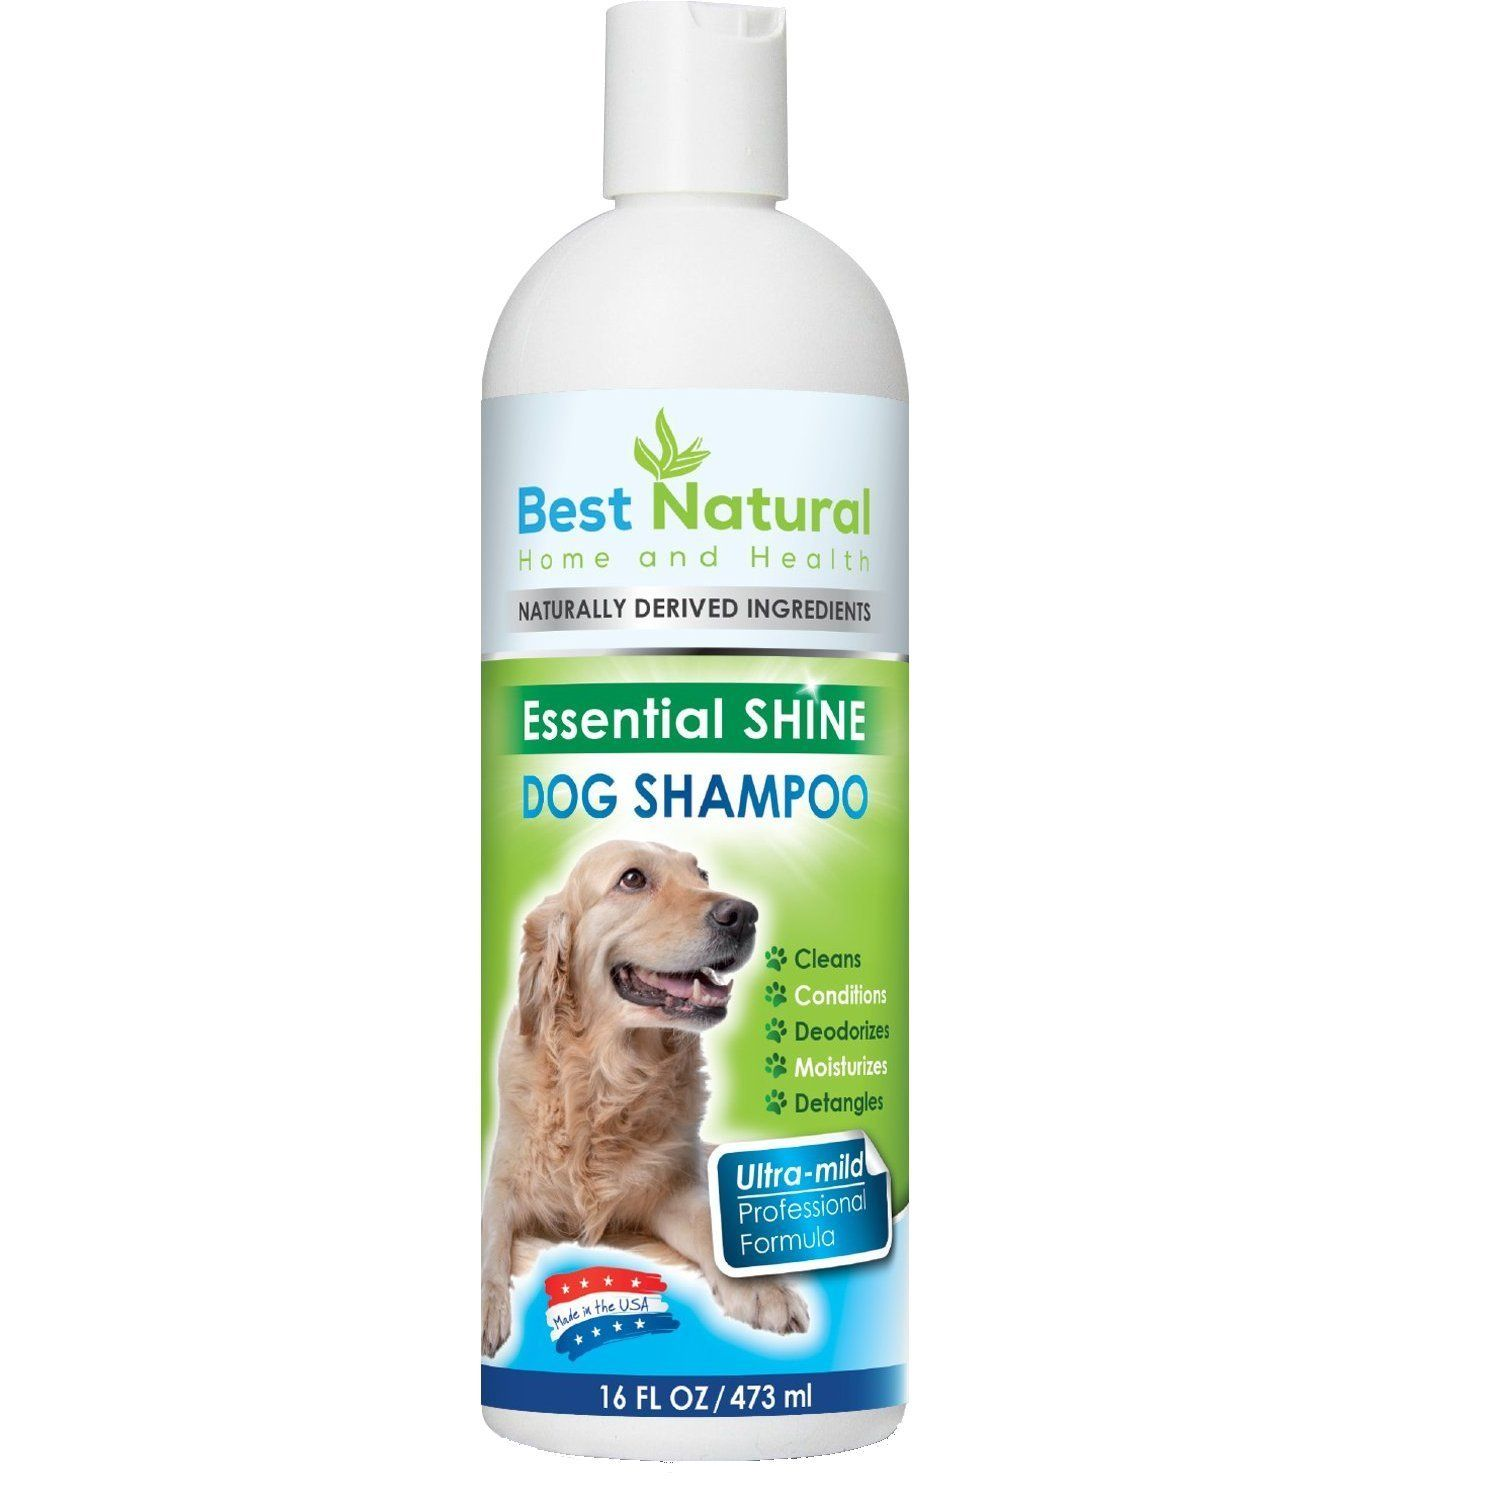 Best natural dog shampoo and conditioner dog shampoo for